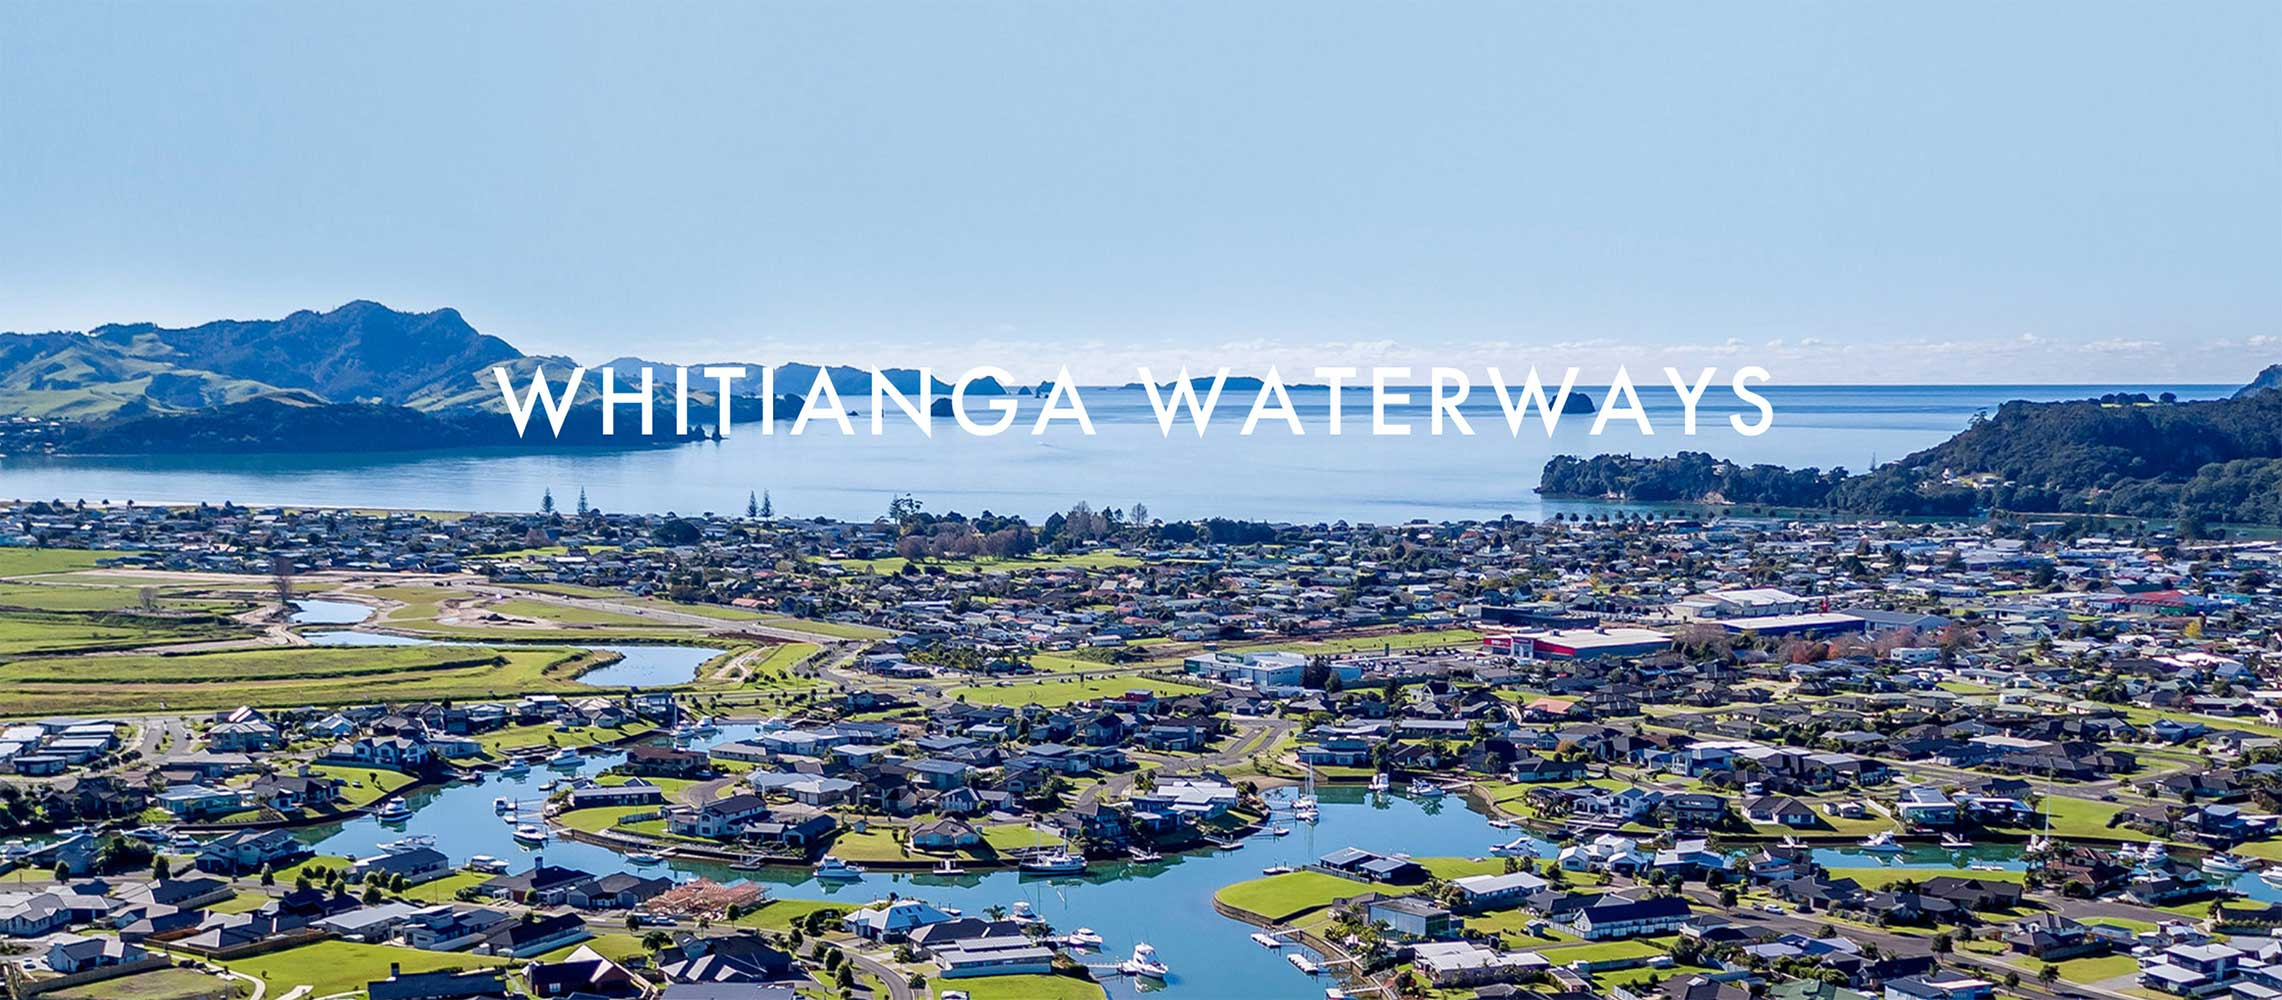 Whitianga waterways